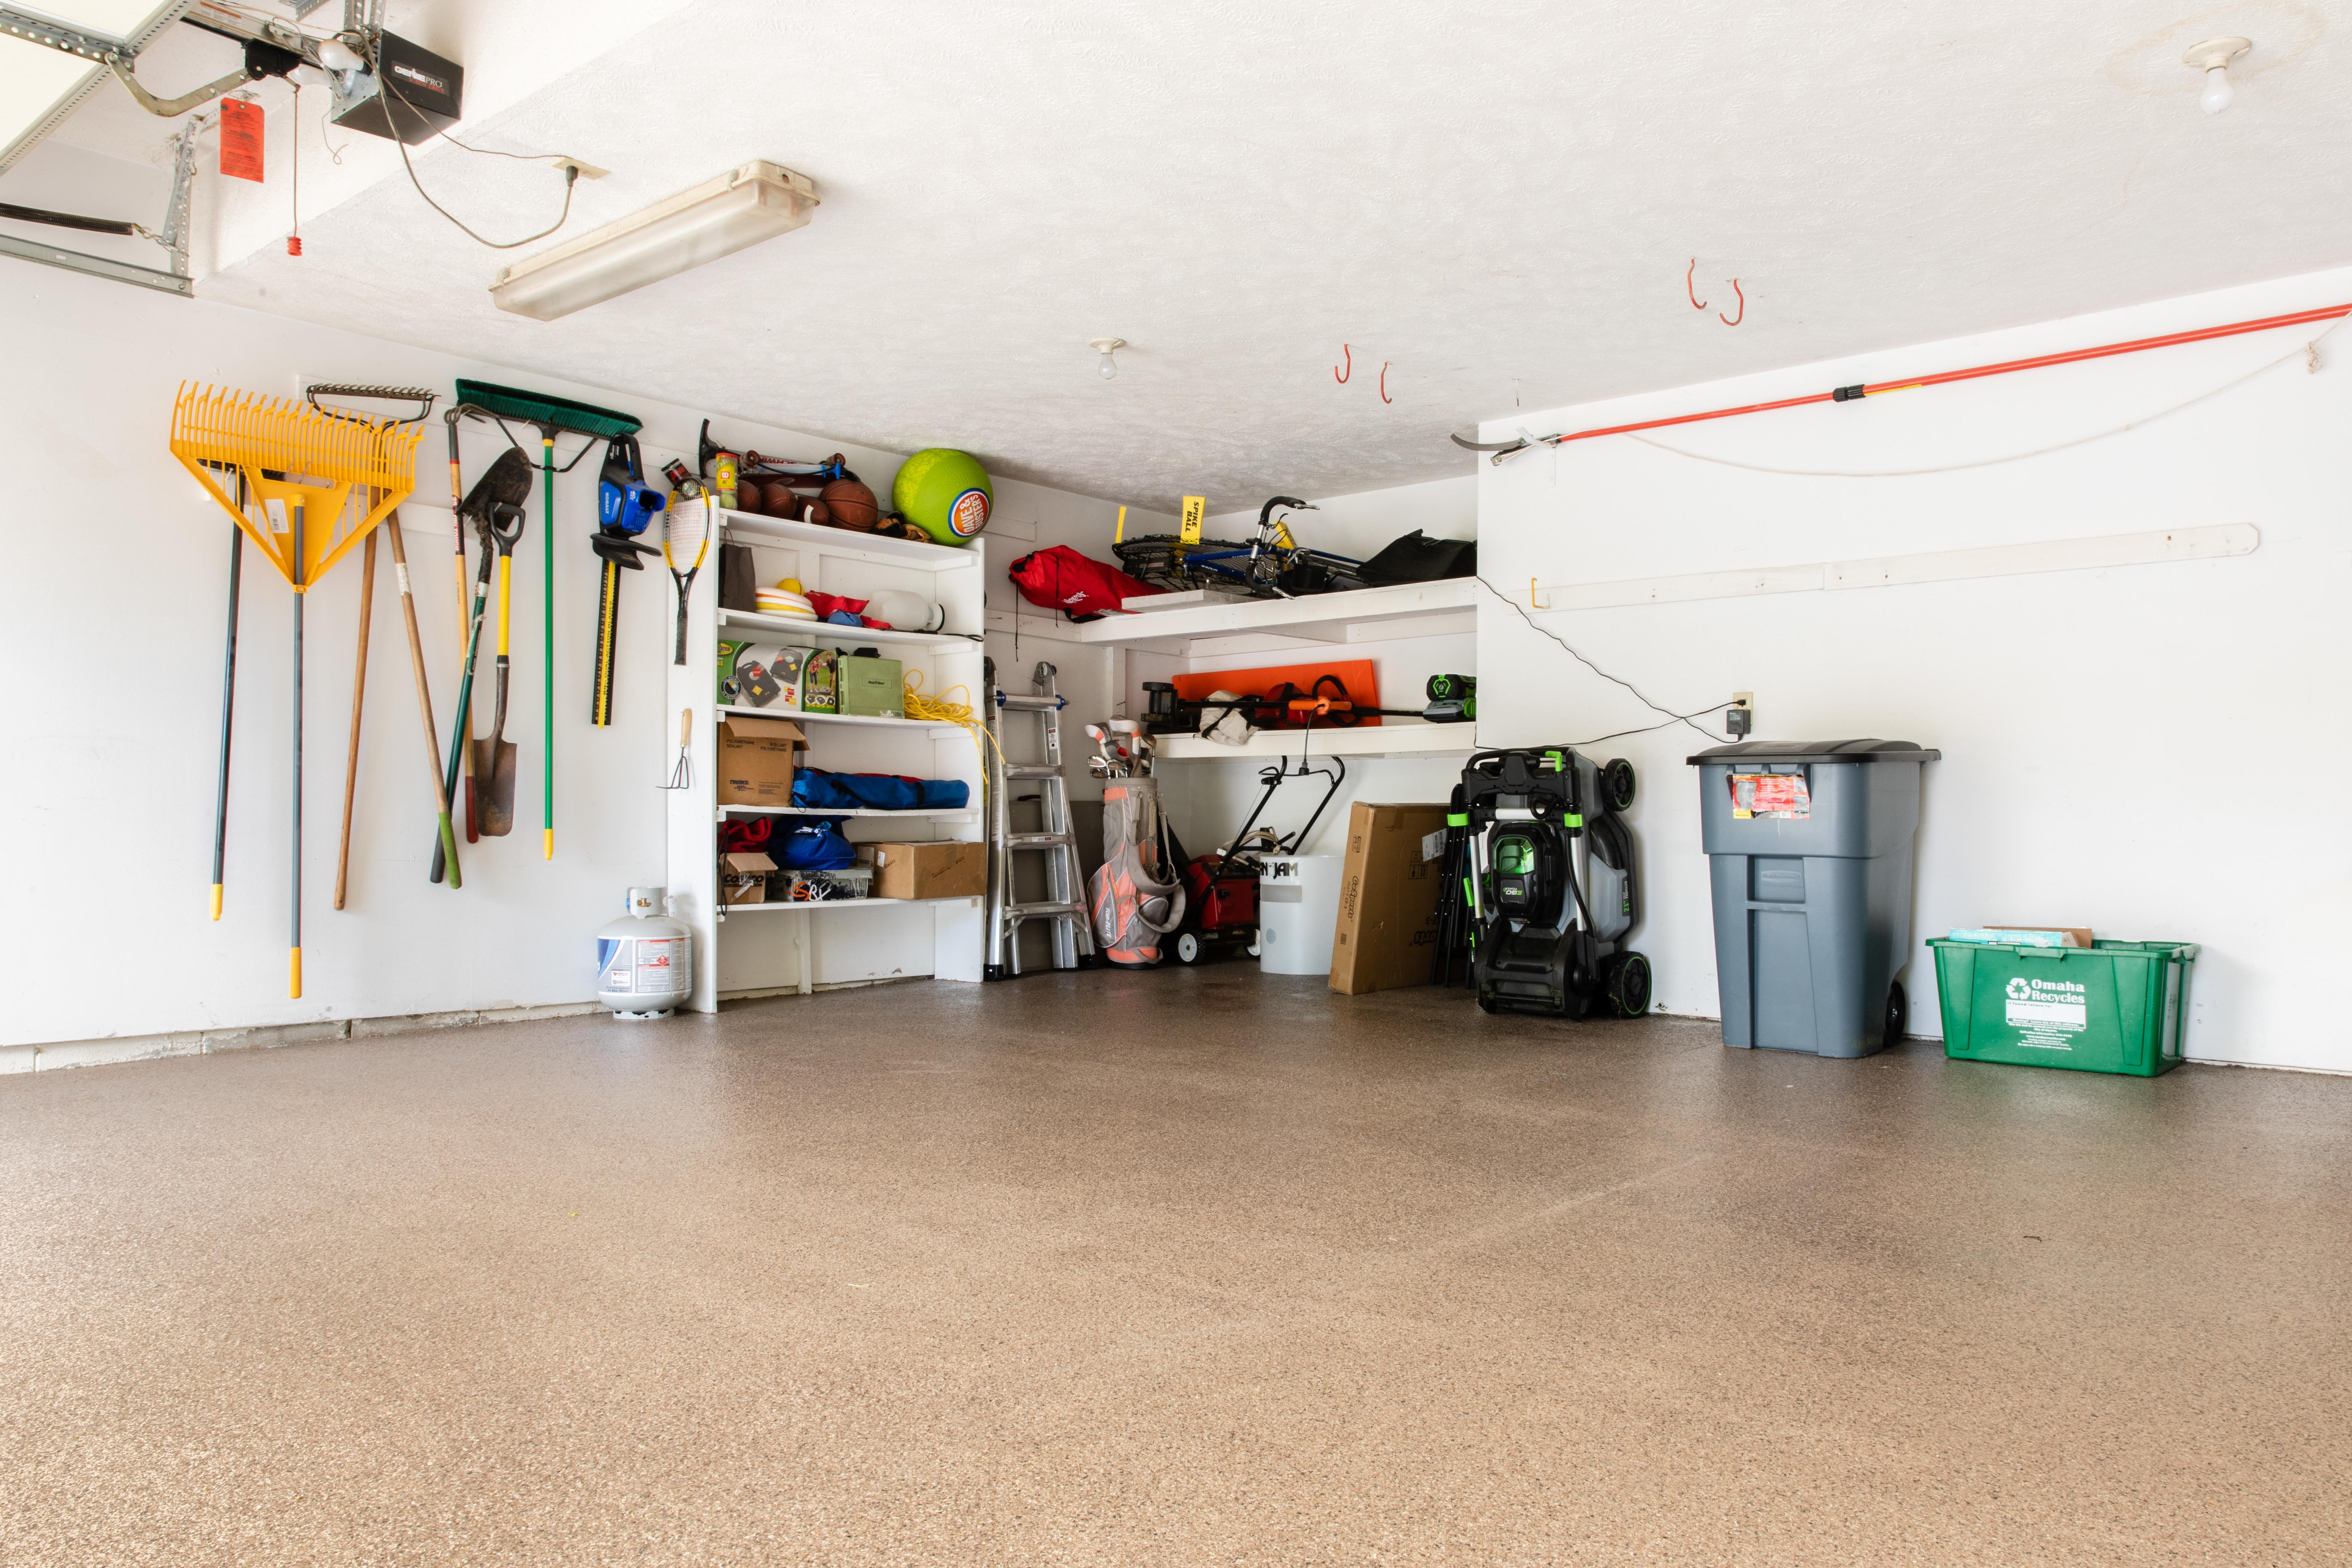 Garage Floor Coating in Just a Day